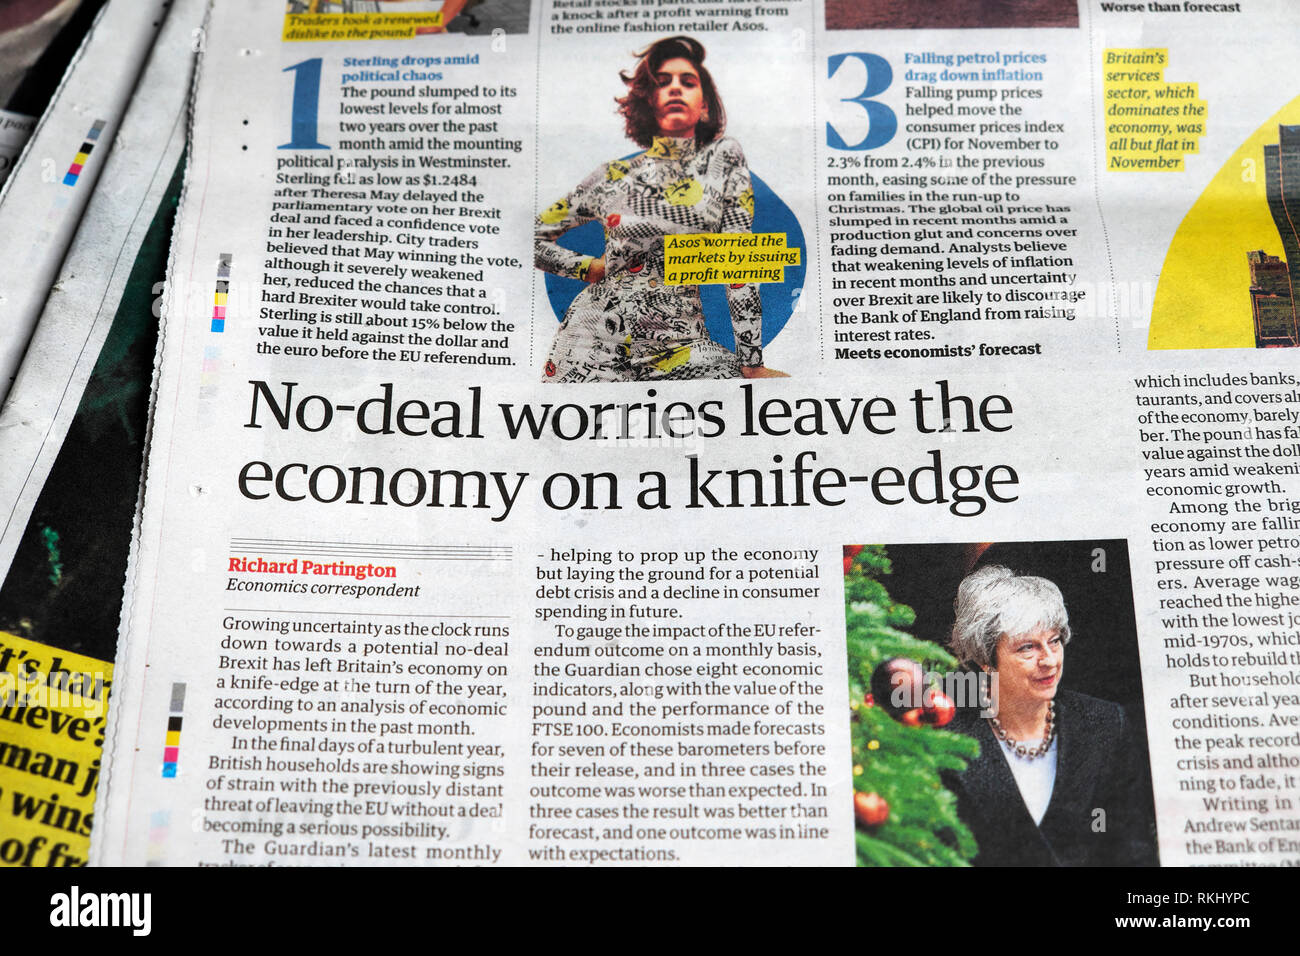 'No-deal worries leave the economy on a knife-edge'  Guardian newspaper article 2018 London Englanbd UK - Stock Image